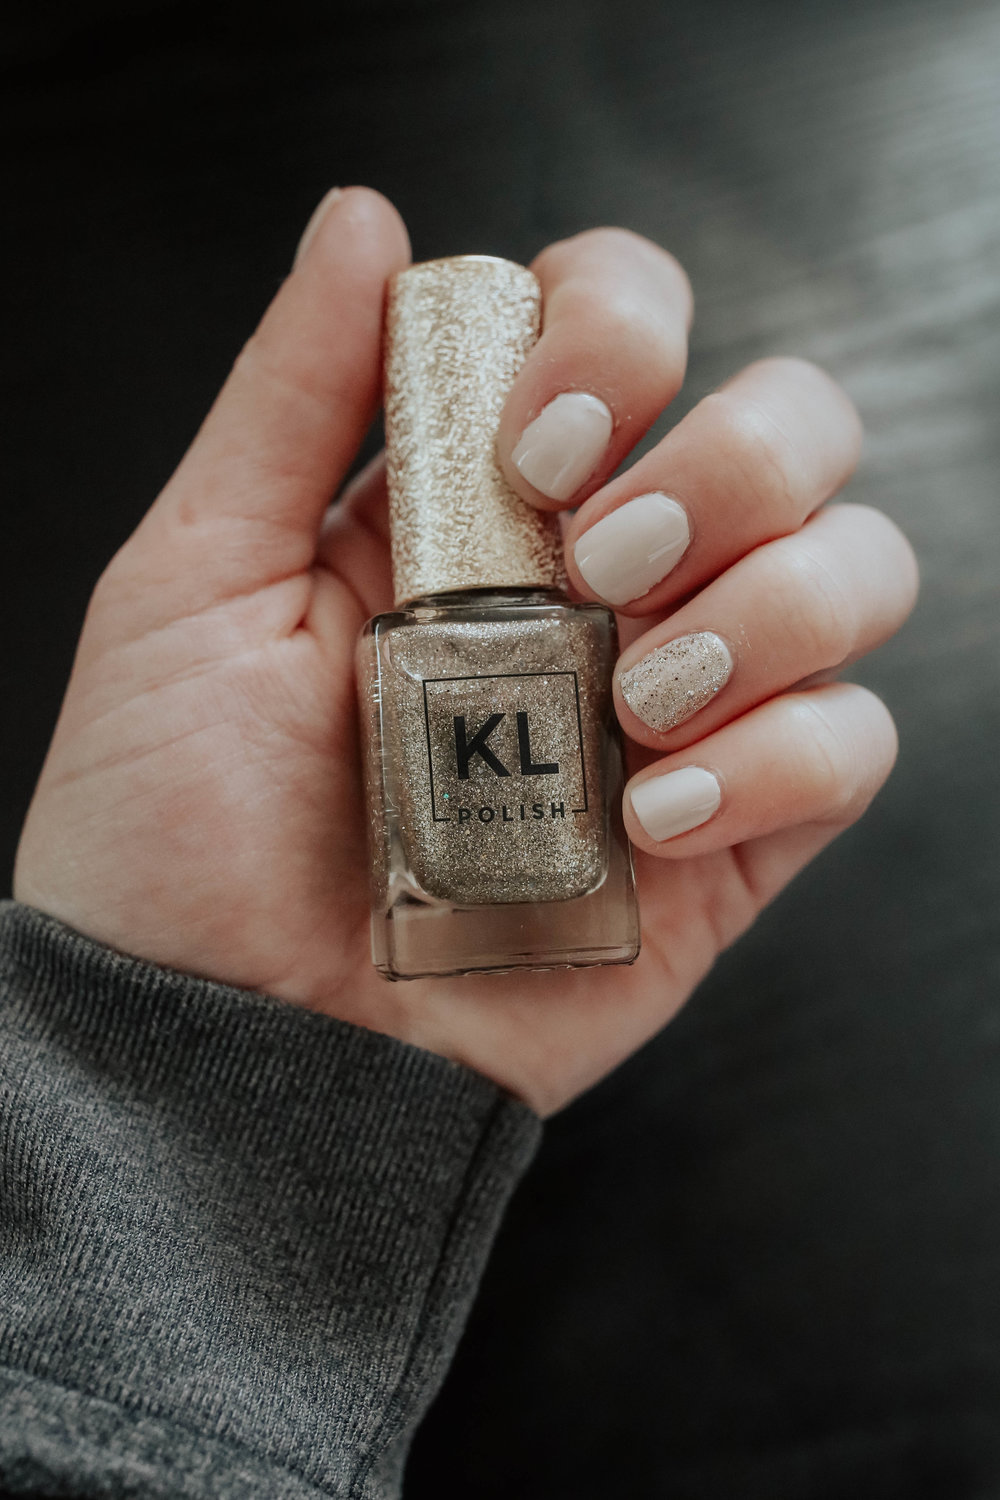 """3. KL nail polish - this is great for any beauty lover, and i've given them to friends' kids as well. all of the polishes are 12-free, meaning there are less toxic chemicals than some of the polishes sold in drugstores. the formula is super long-lasting and comes in so many colors that just about anyone will find a color they like. i'm pictured wearing """"Pinky"""" and """"Das Esspensive."""""""